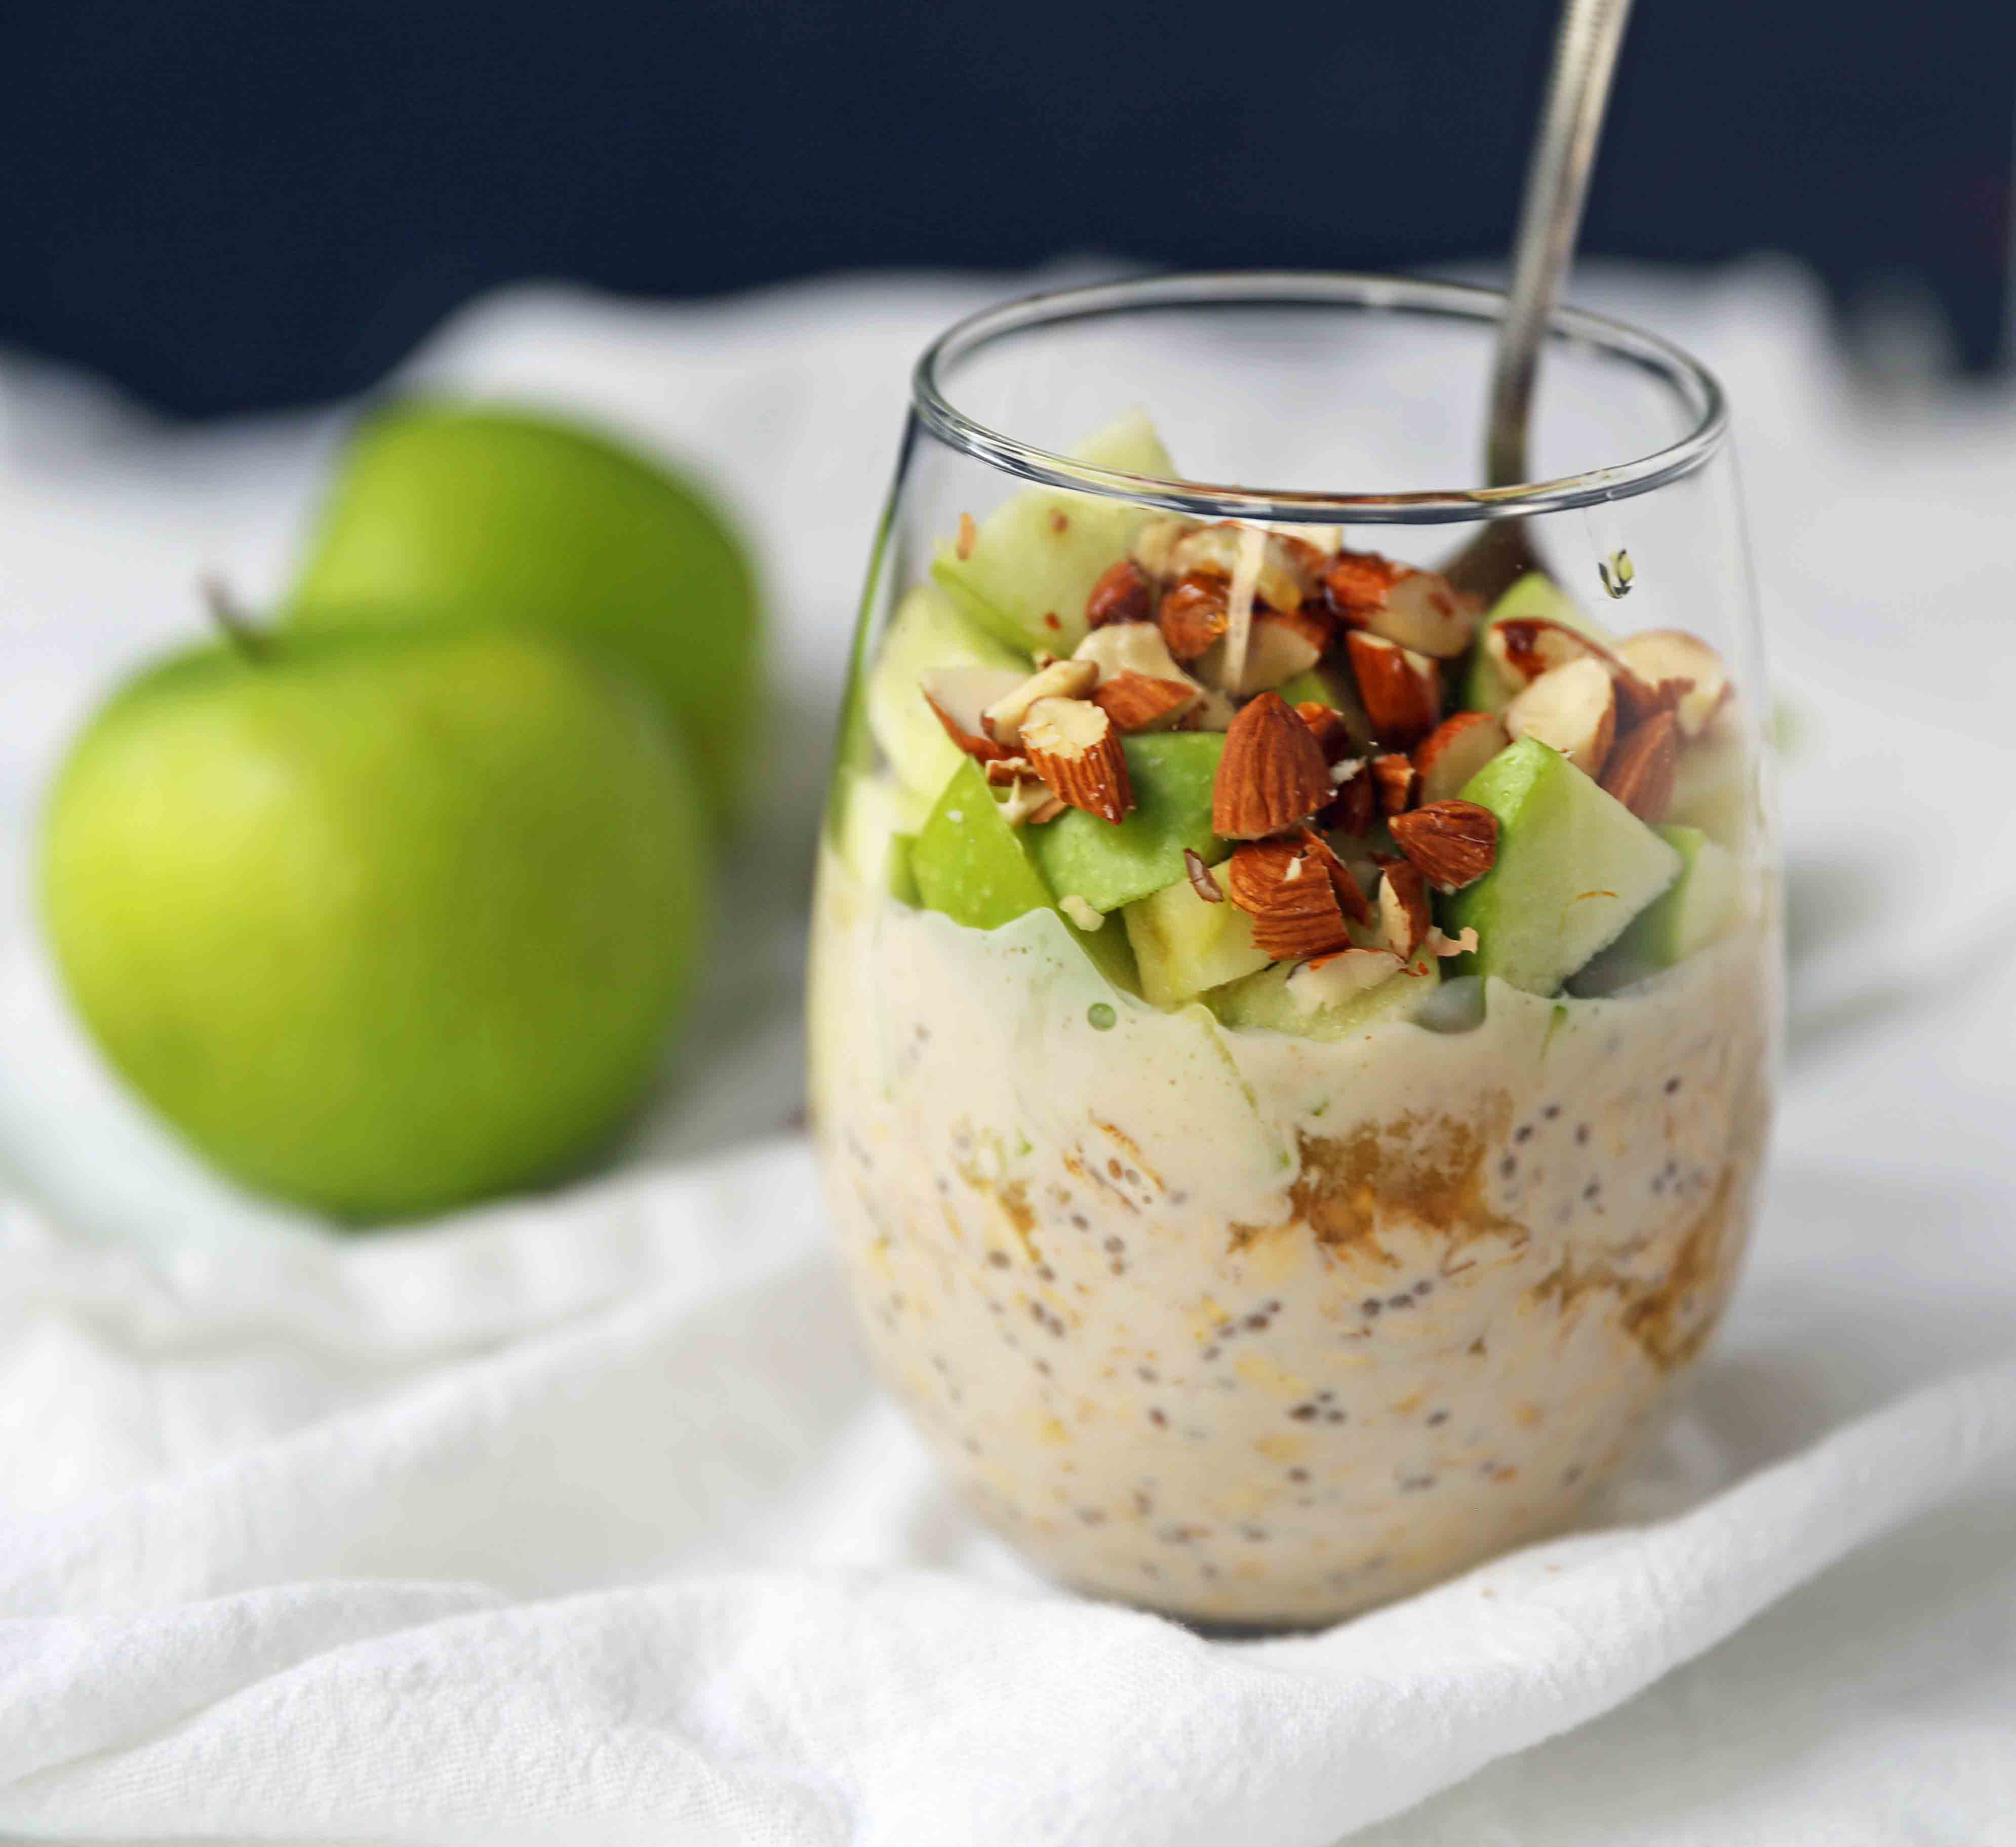 Apple Pie Overnight Oats. Healthy no-sugar-added breakfast. Overnight Oats with Greek Yogurt, Crisp Green Apples, Crunchy Almonds, Cinnamon, and Real Maple Syrup. www.modernhoney.com #overnightoats #applepieovernightoats #appleovernightoats